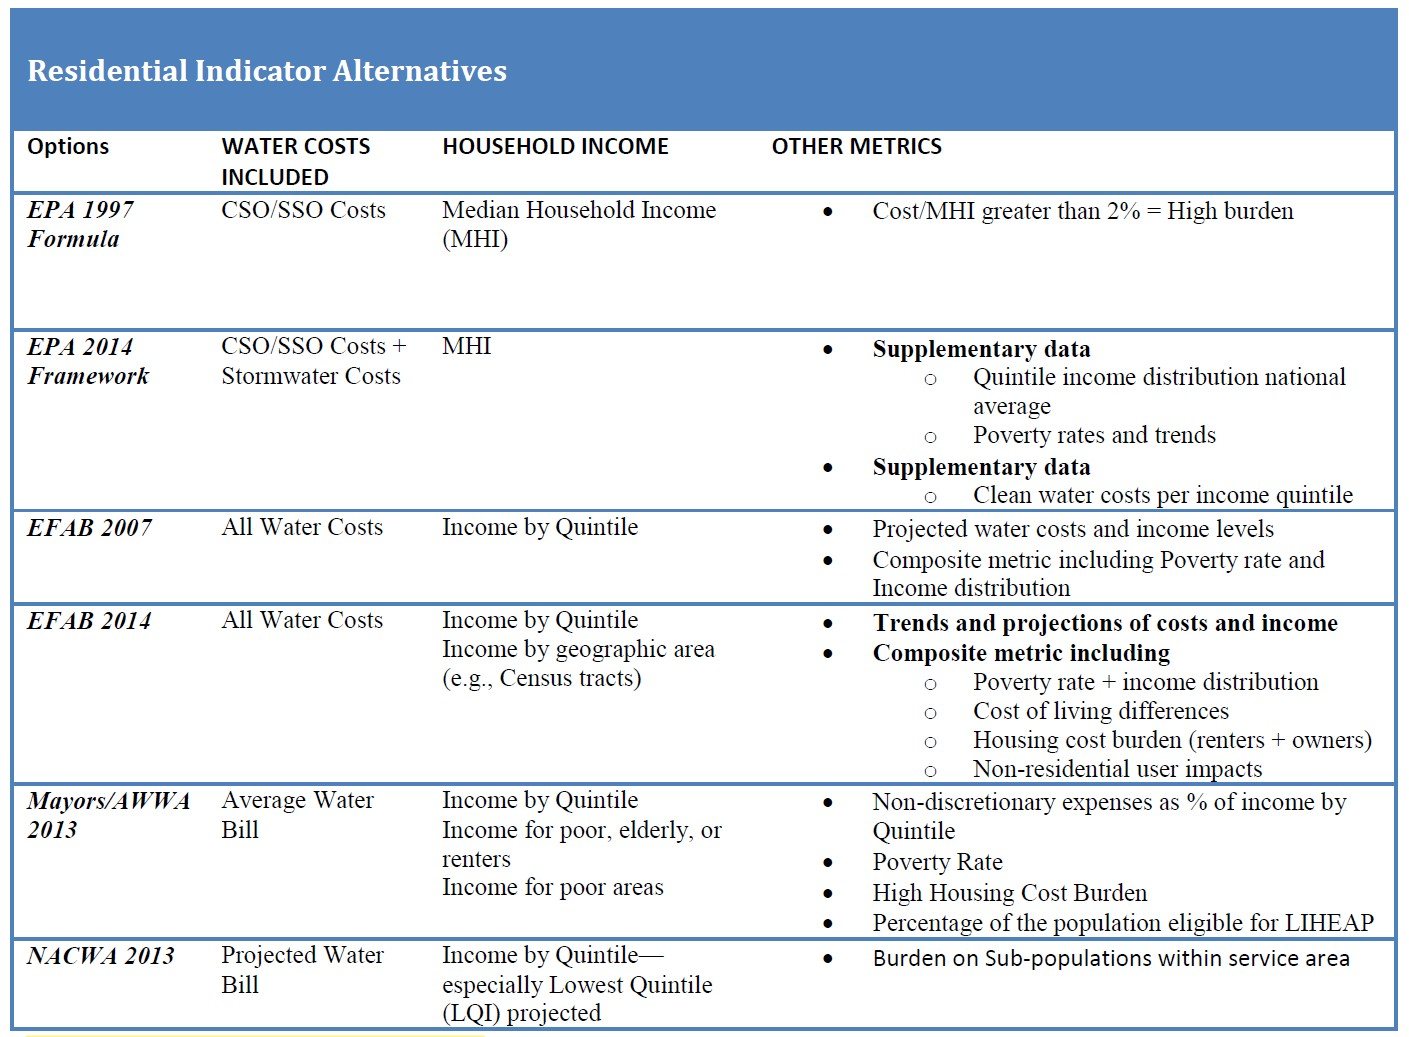 Figure 10: Residential Indicator Metric Alternatives